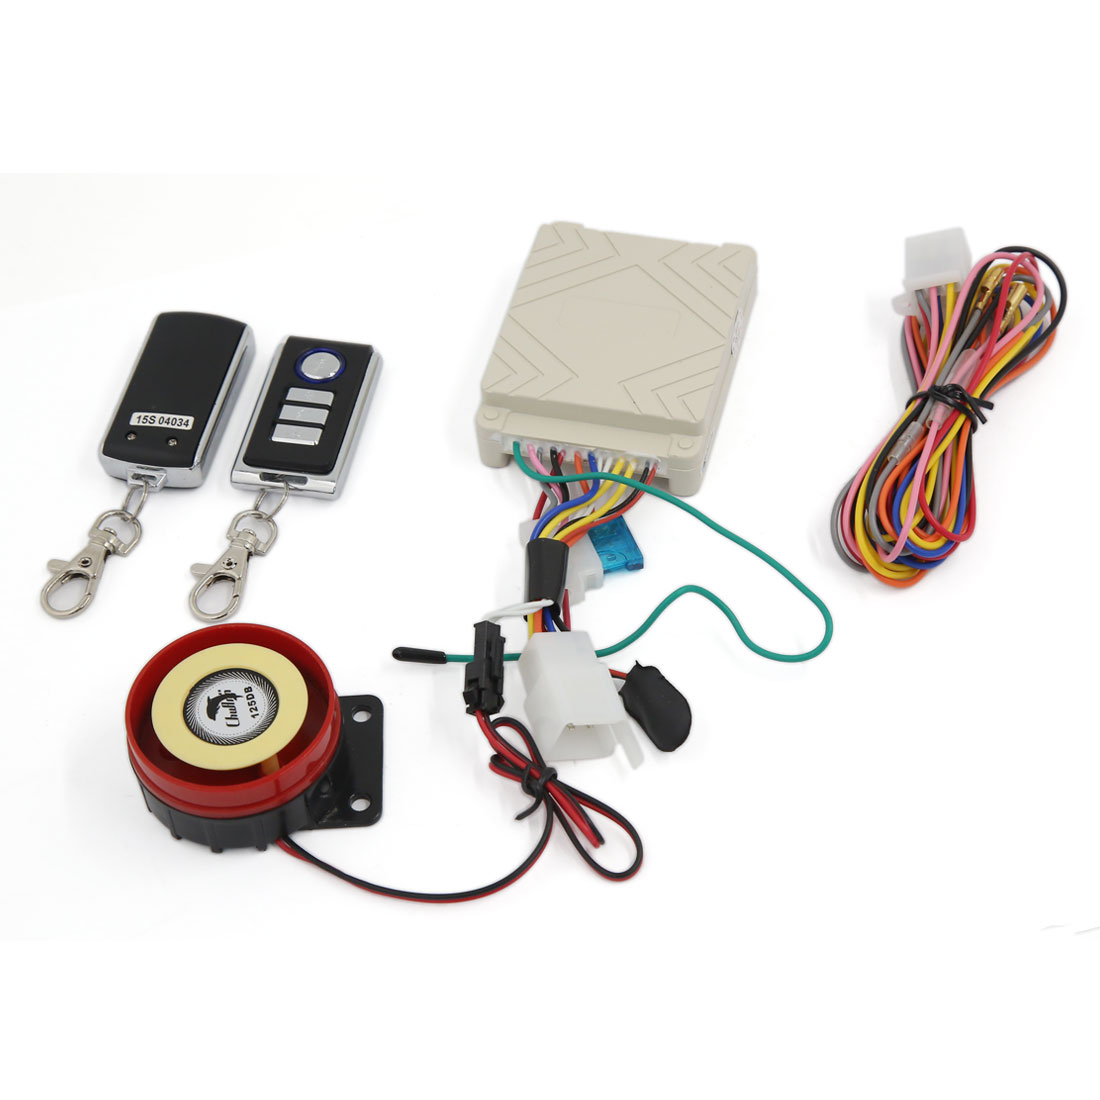 DC 12V Motorcycle Anti-theft Security Alarm System Engine Start 125dB w Remote Control